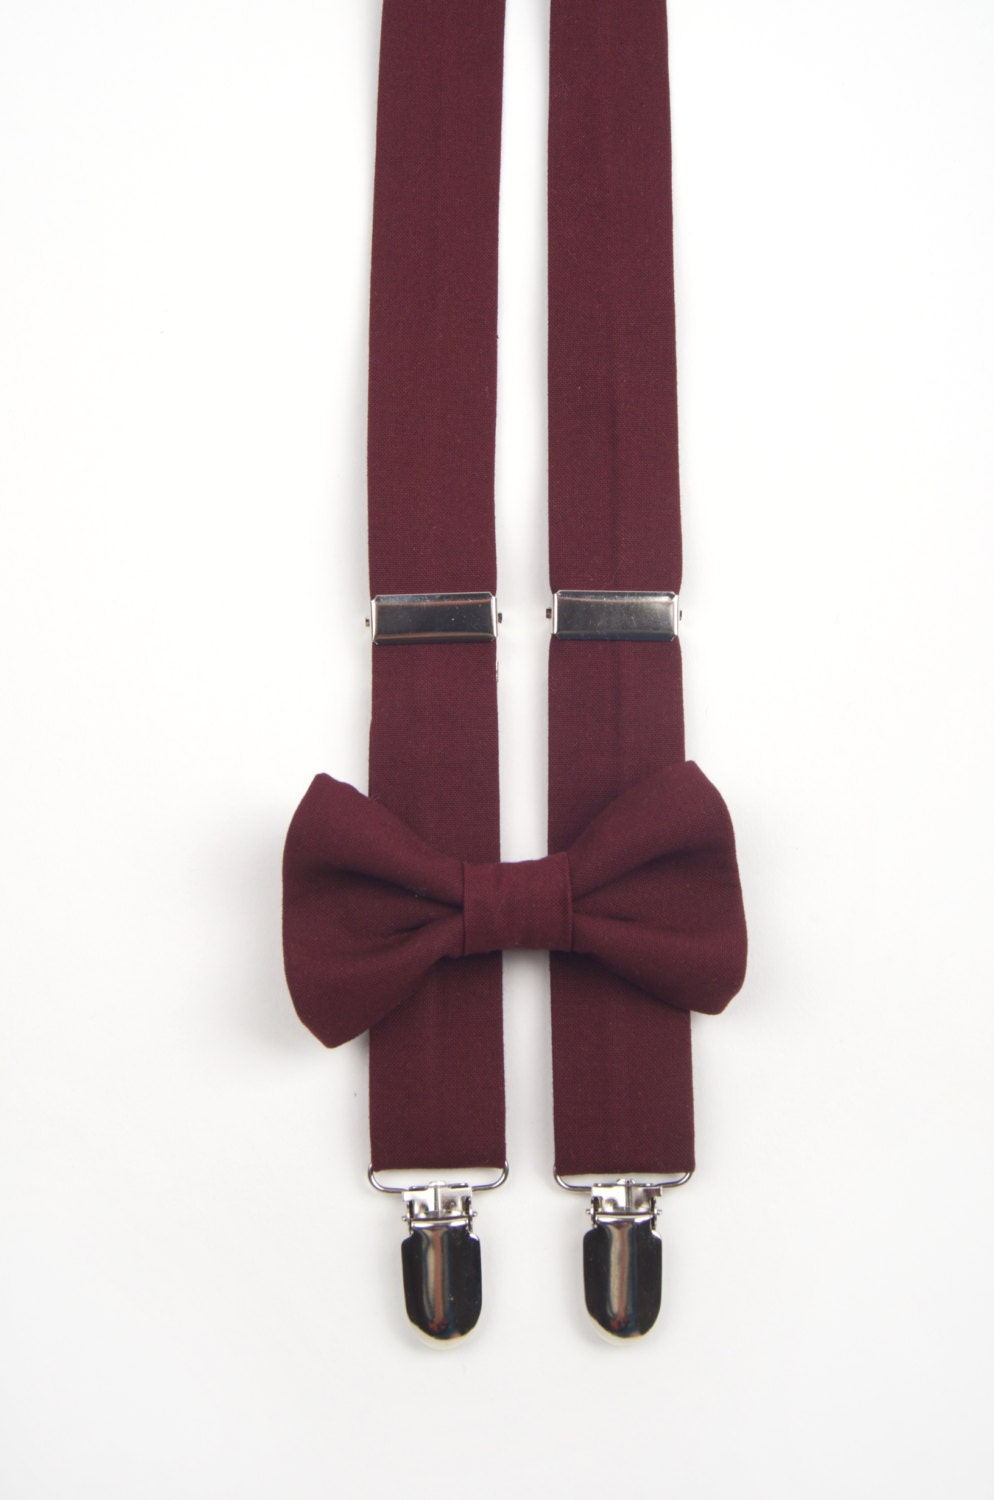 Complete your stylish bow tie look with fashionable men's suspenders. Available in an array of solid colors at discount prices.